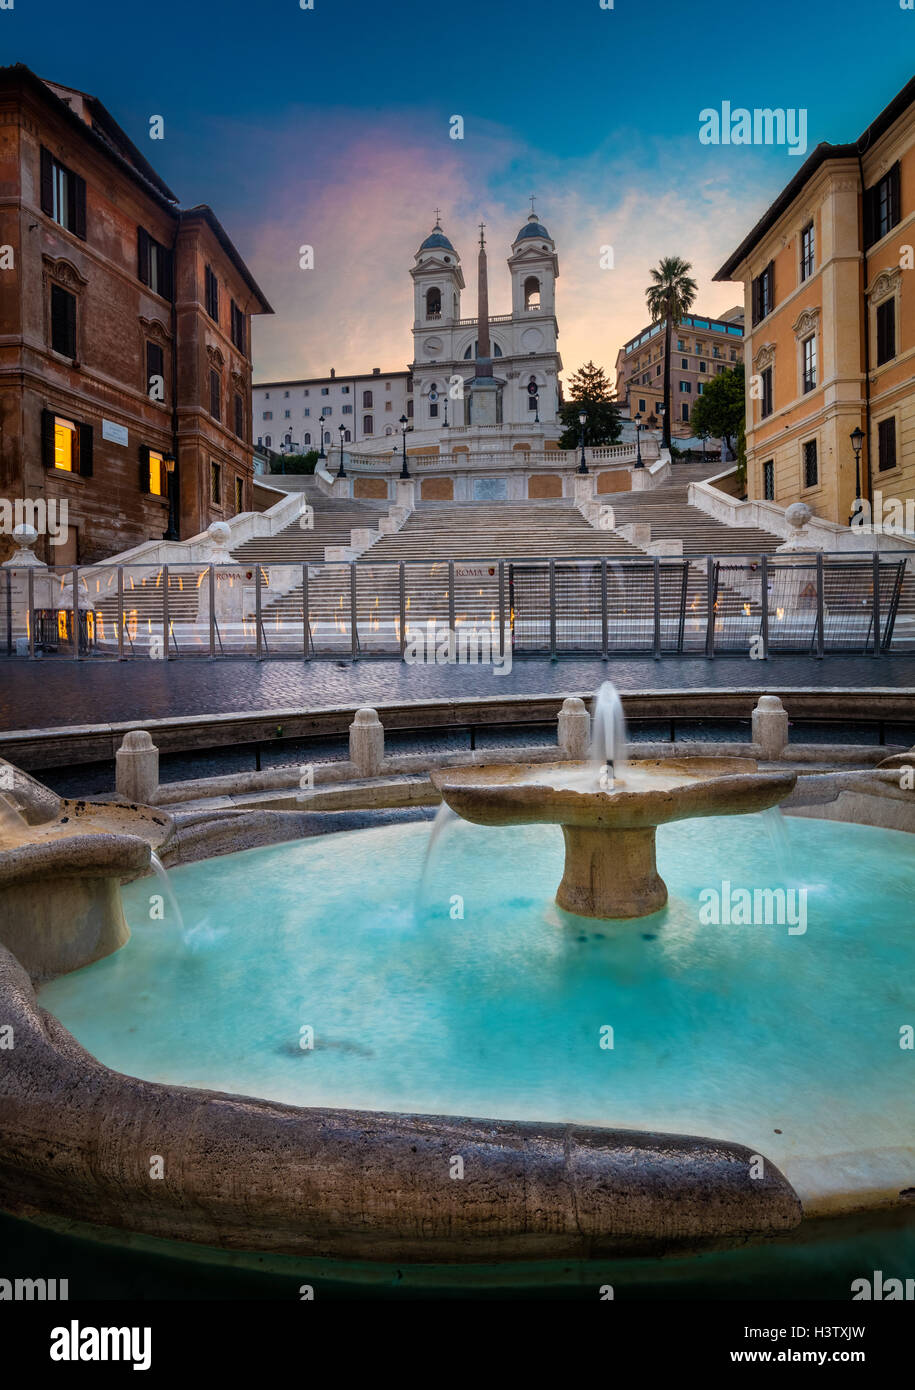 The Spanish Steps are a set of steps in Rome, Italy - Stock Image